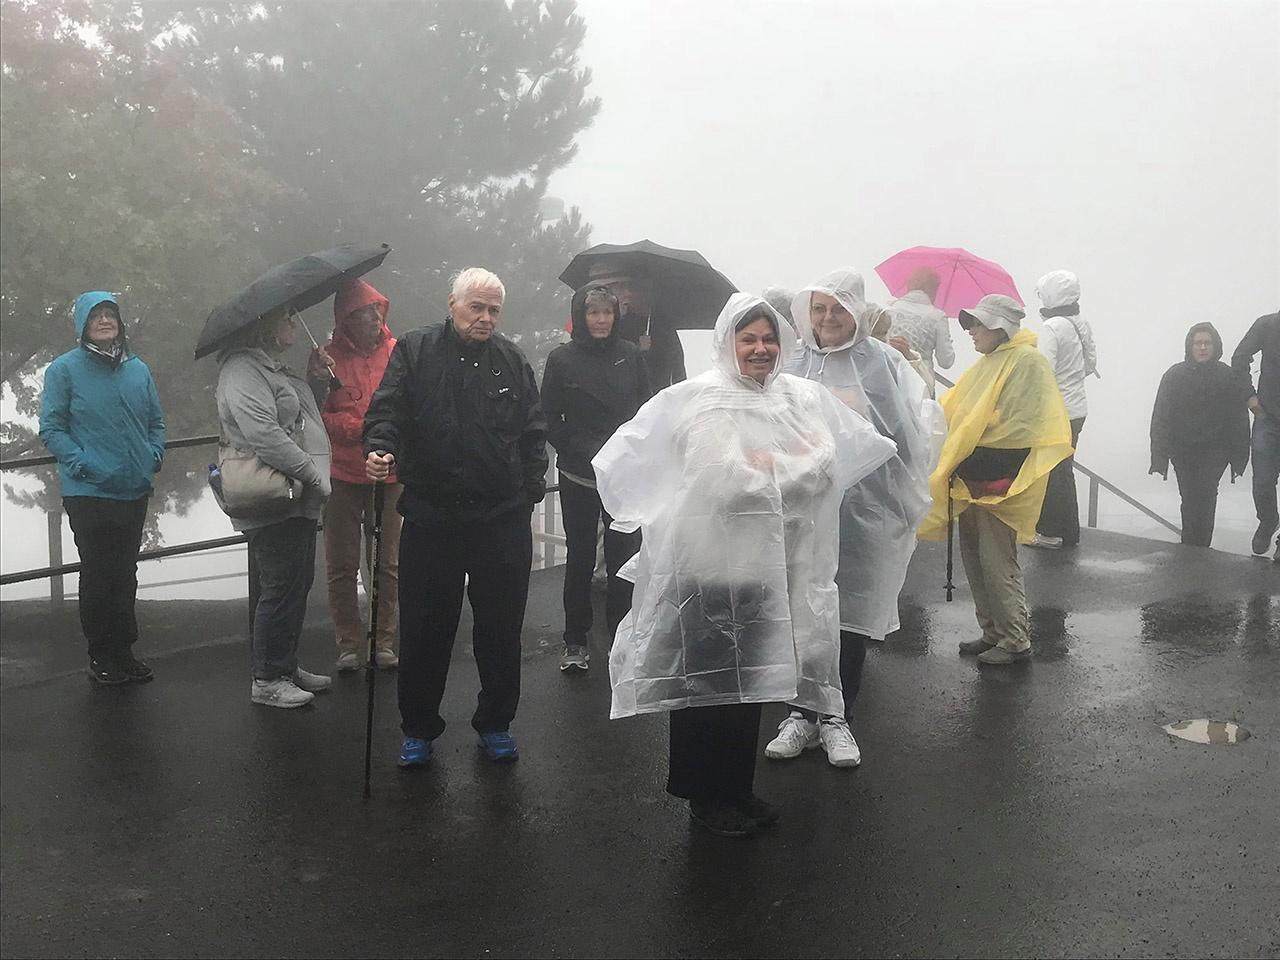 Group of travels in rain gear standing in the fog